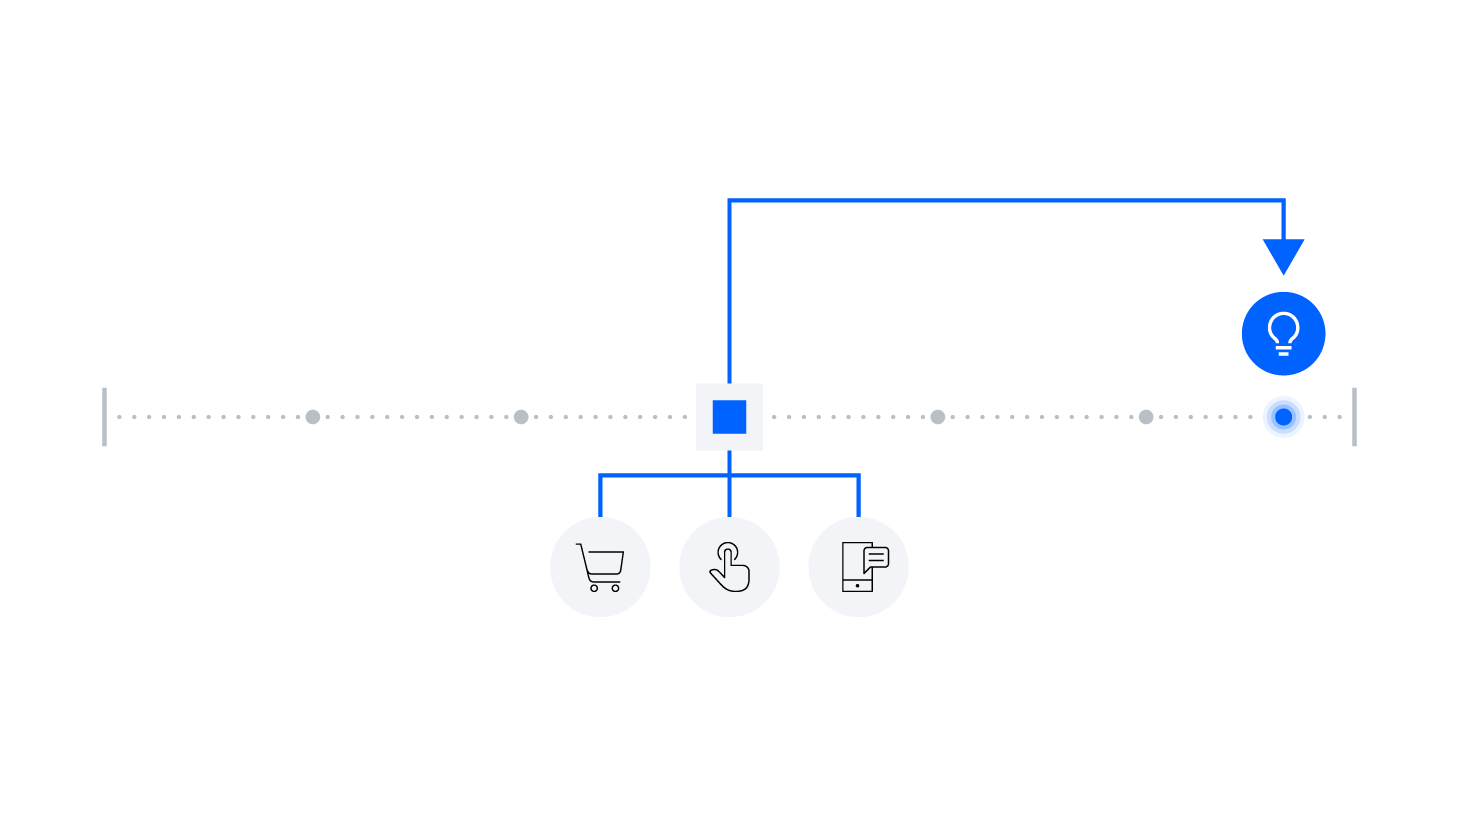 Diagram representing insights from historic data via IBM Event Streams